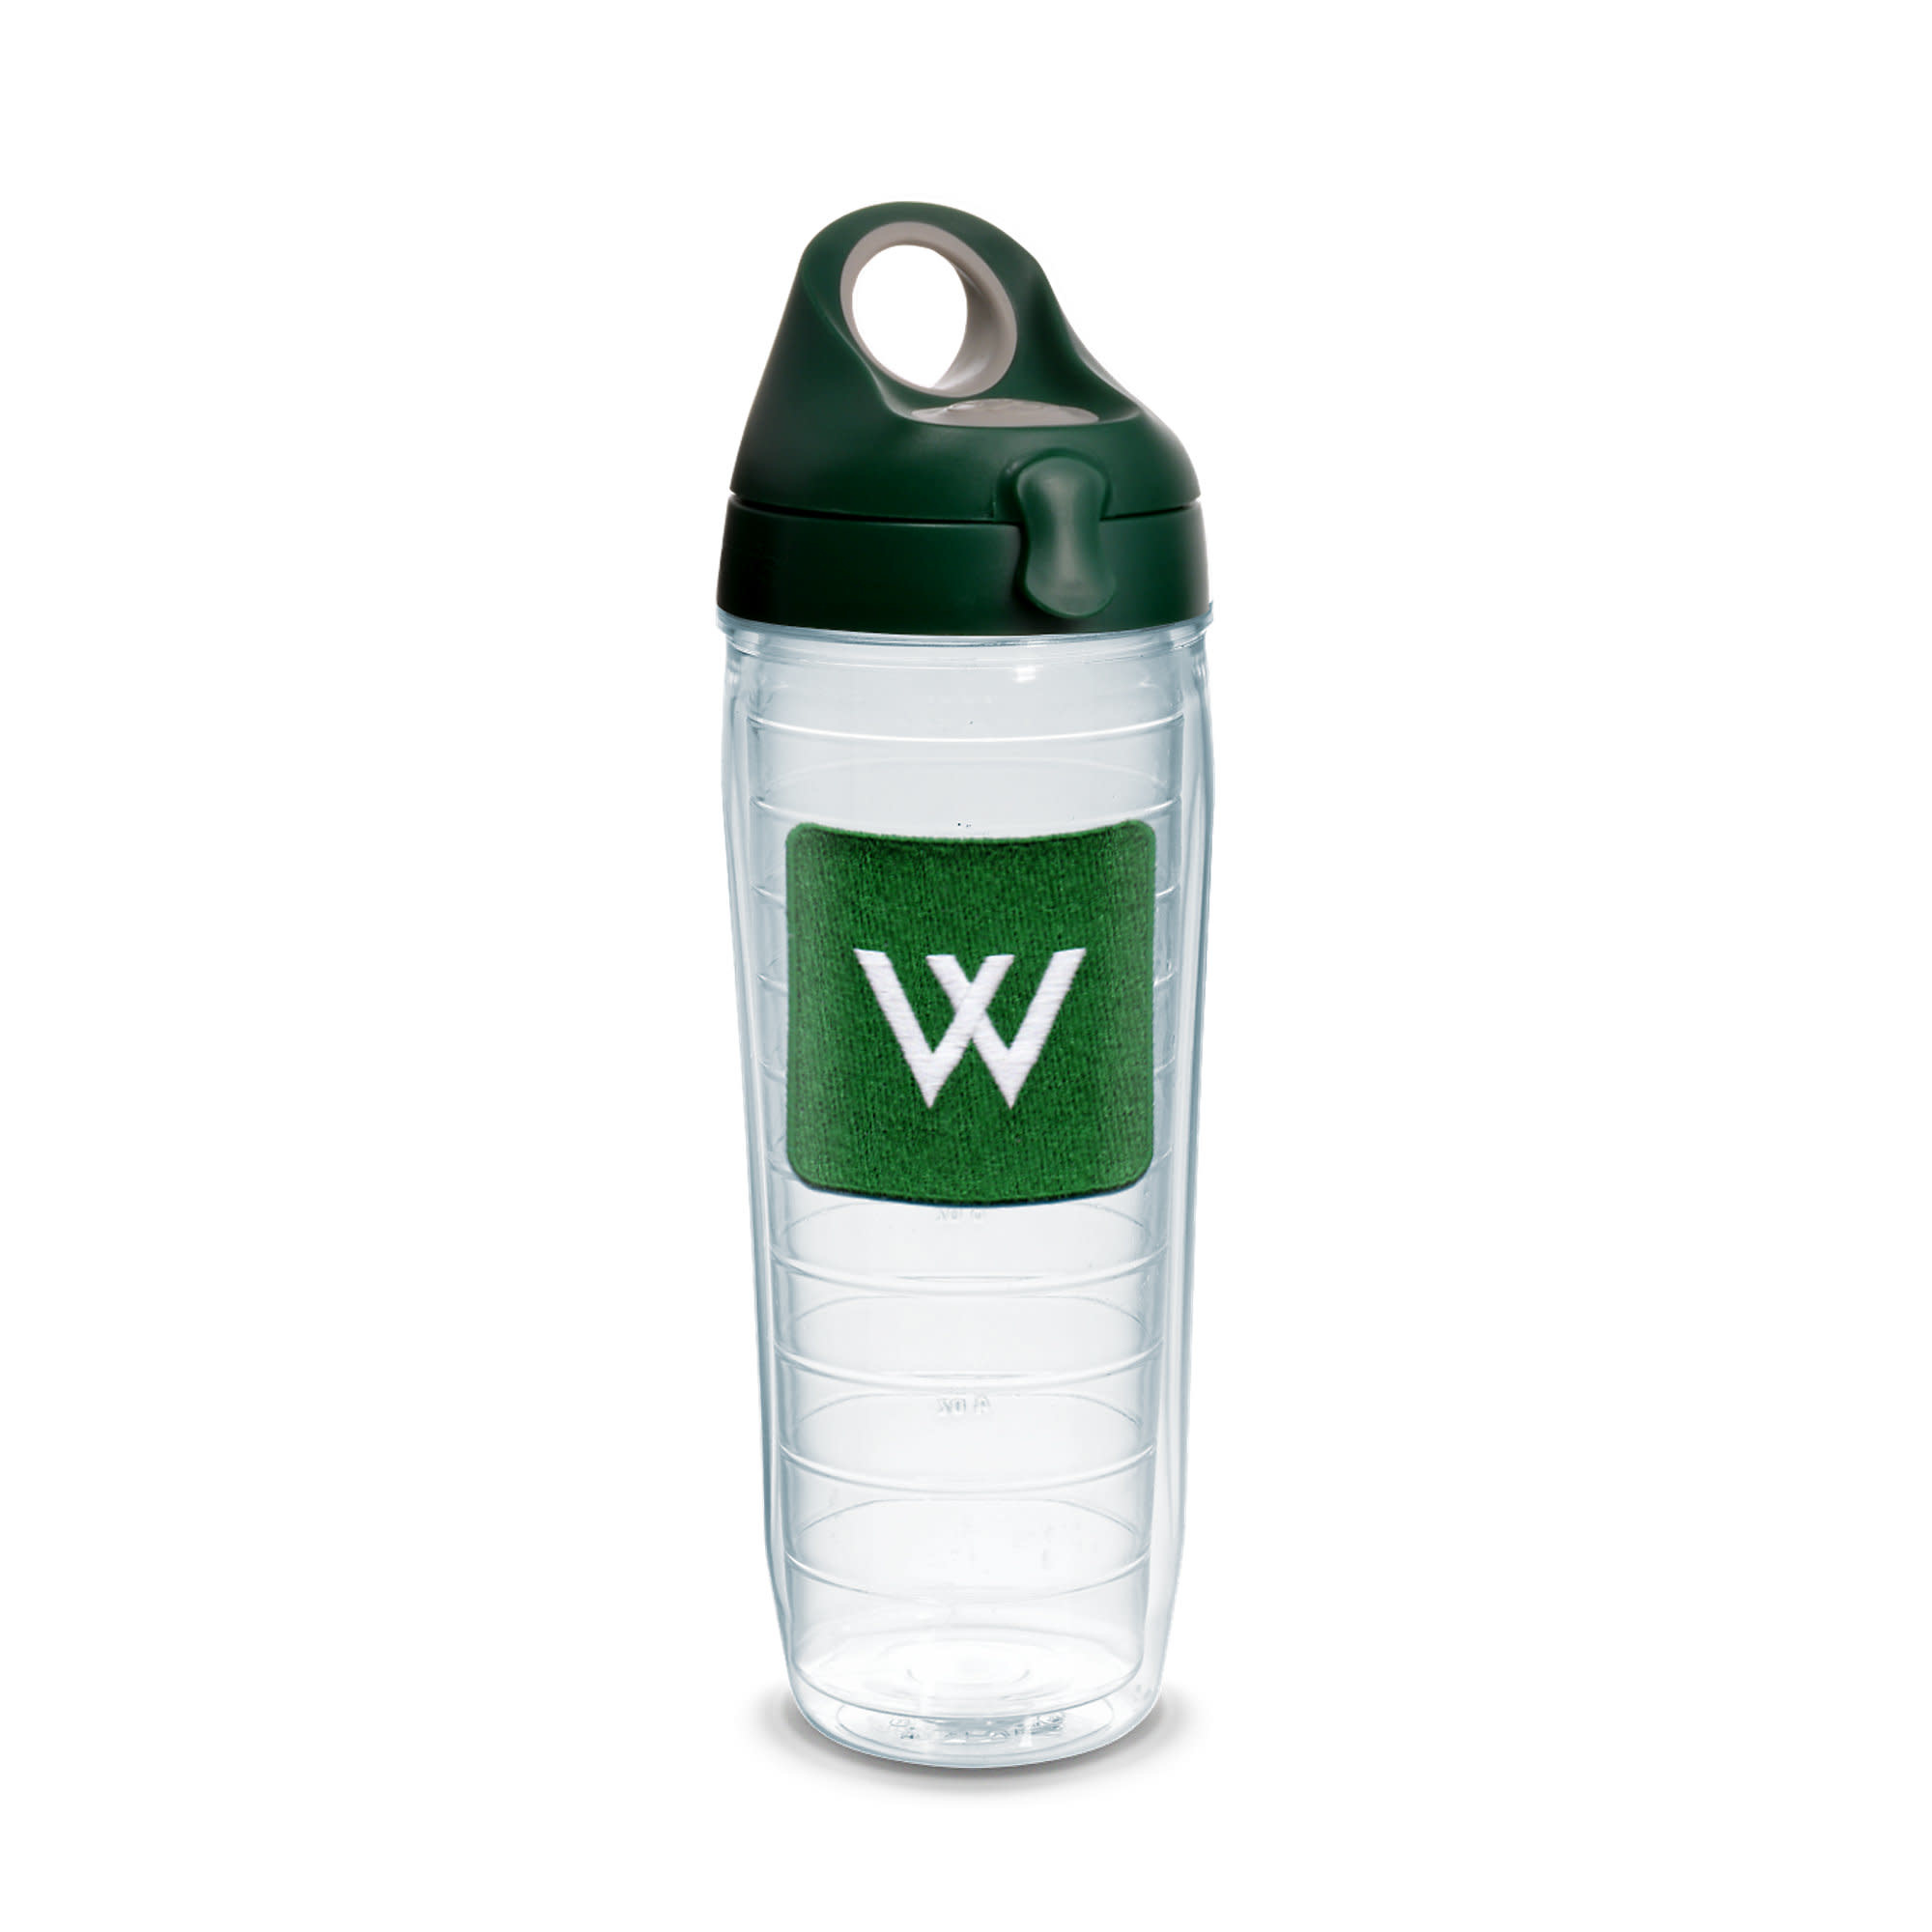 Tervis Tervis: Water Bottle Green W with lid